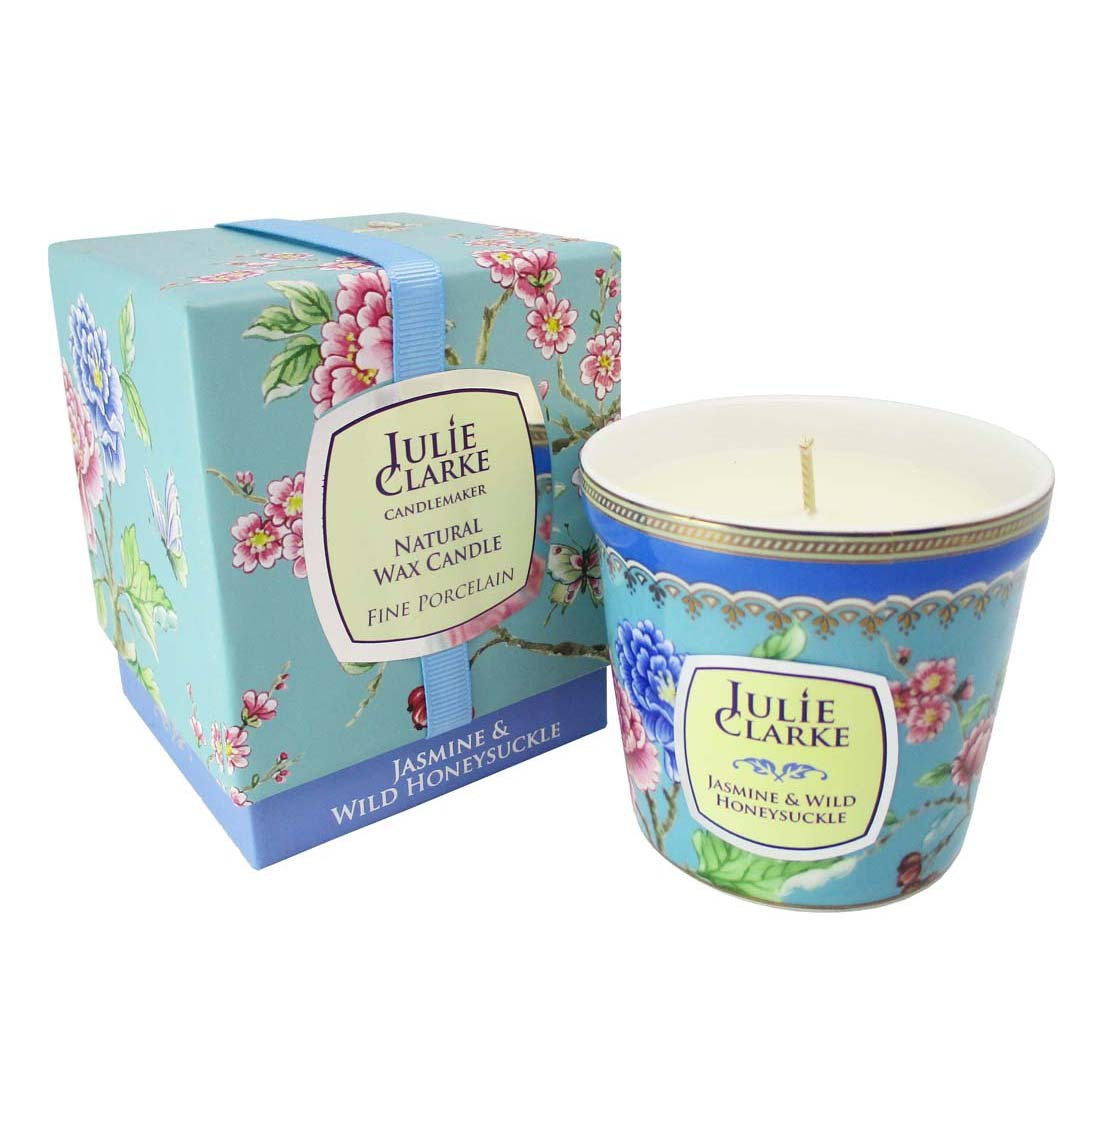 JC Botanic Candle - Jasmine and Wild Honeysuckle